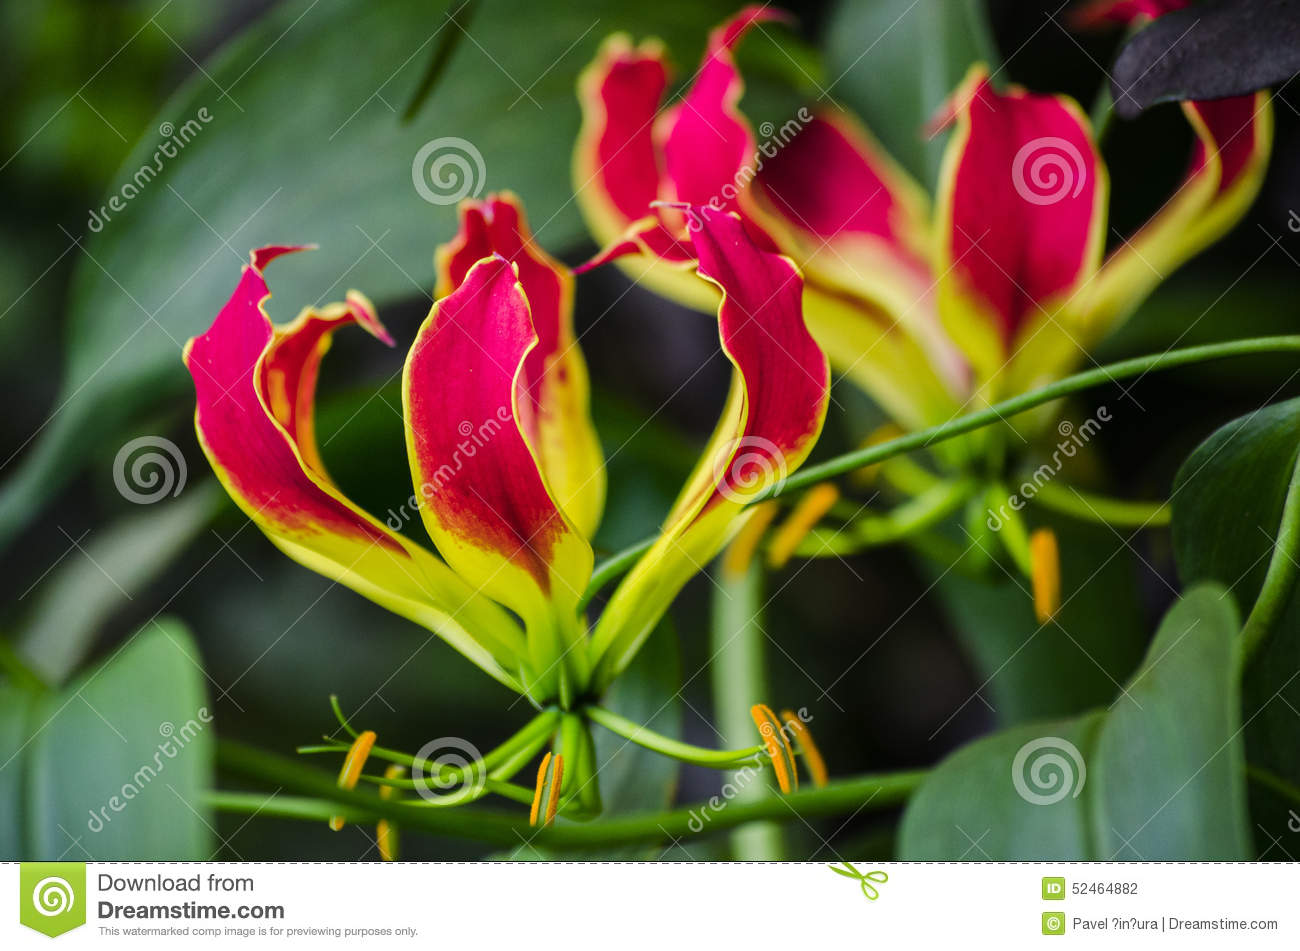 Glory lily stock photo image of petals color flower 52464882 glory lily izmirmasajfo